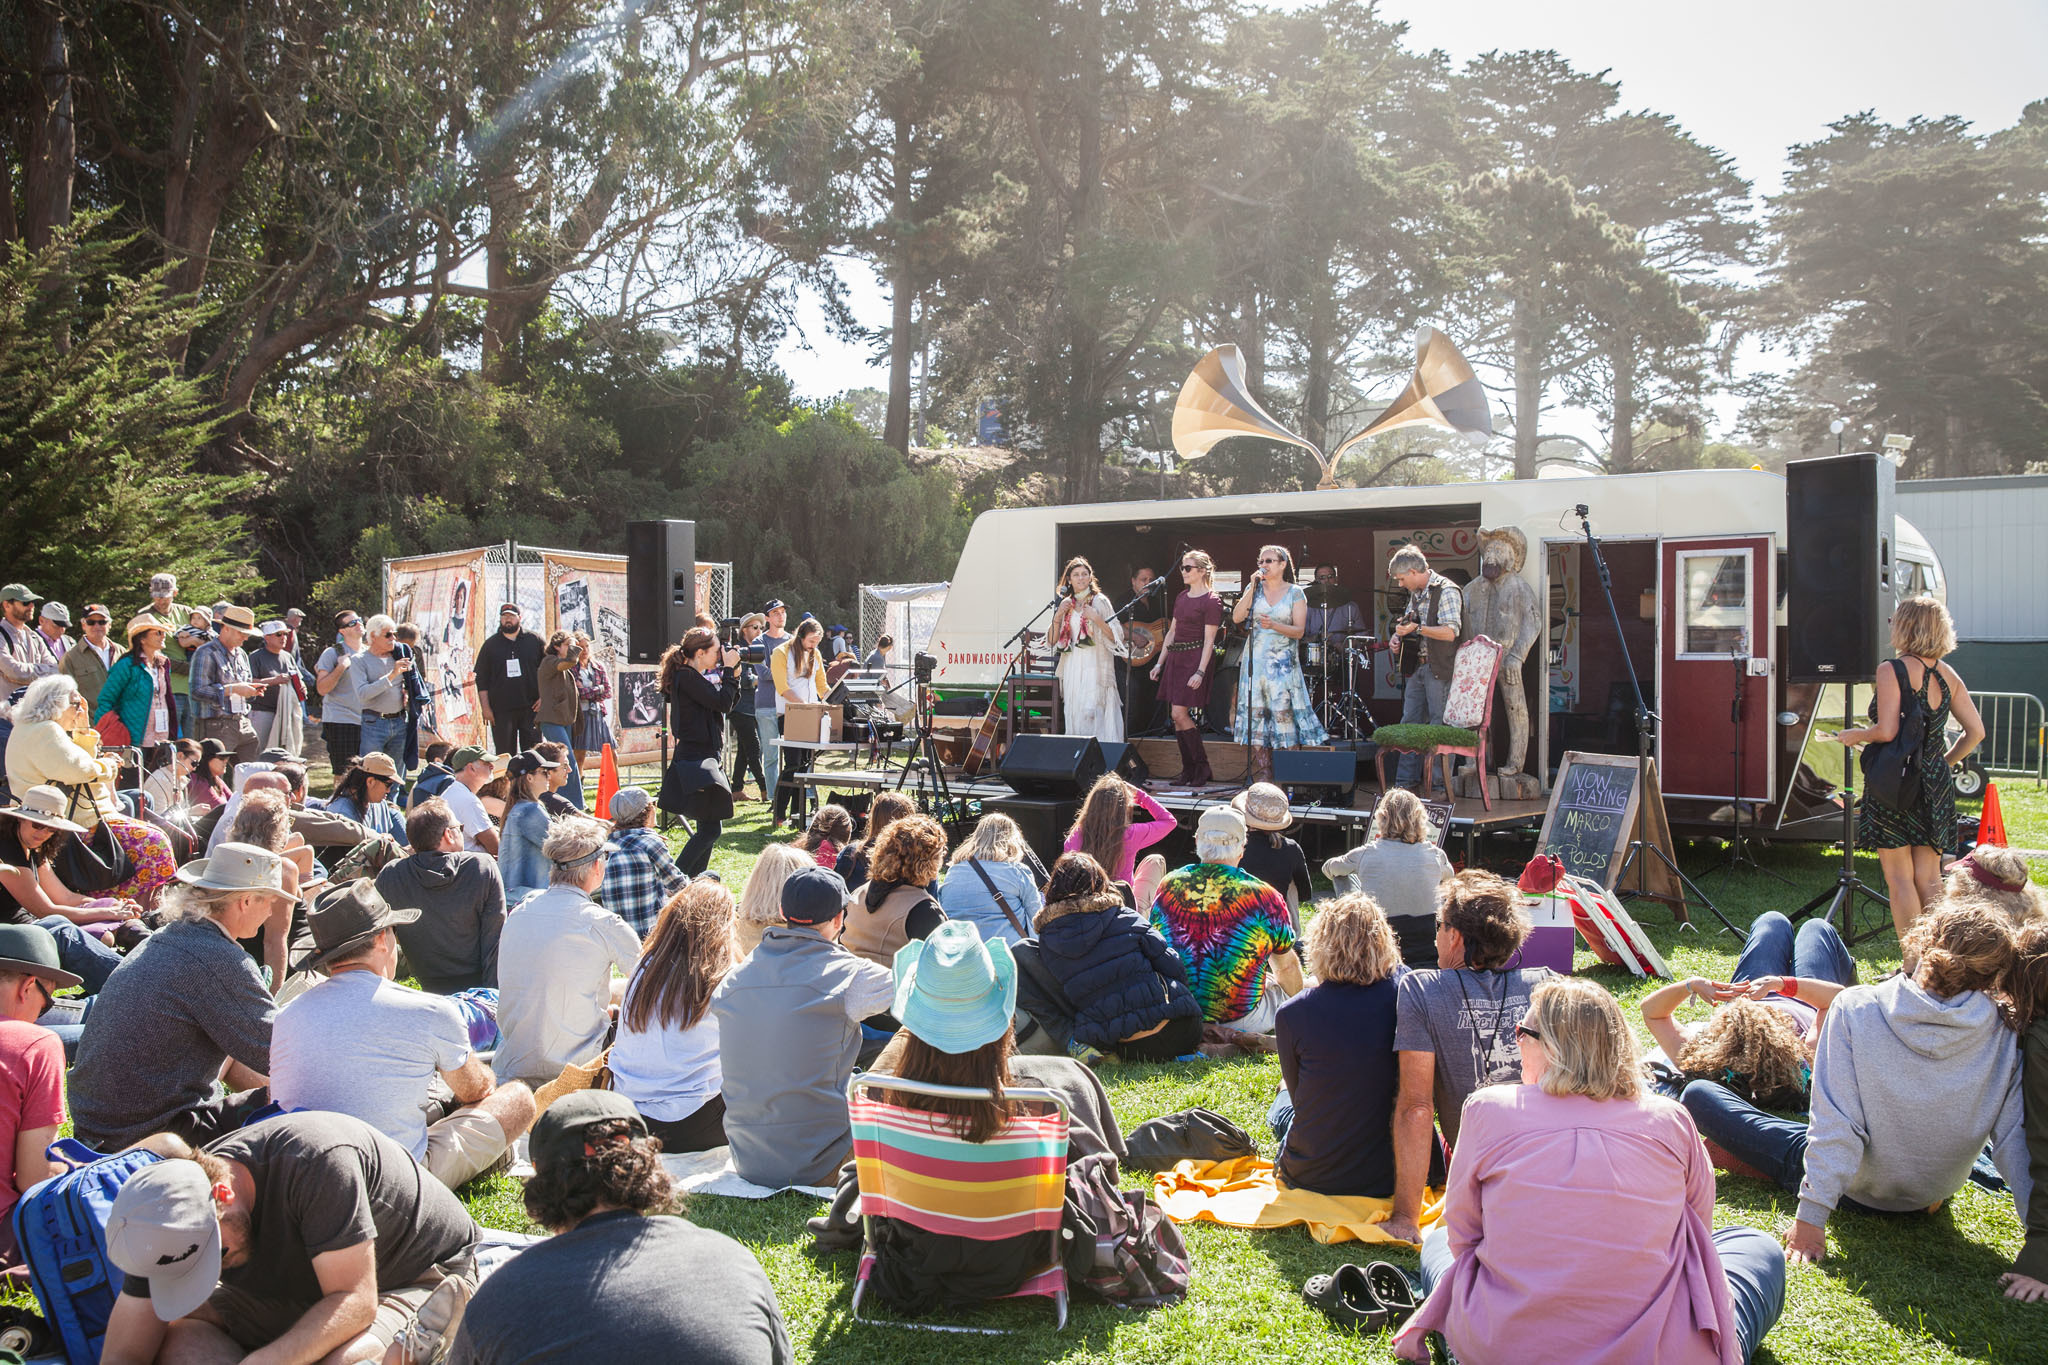 Marco & the Polos at Hardly Strictly Bluegrass 2015